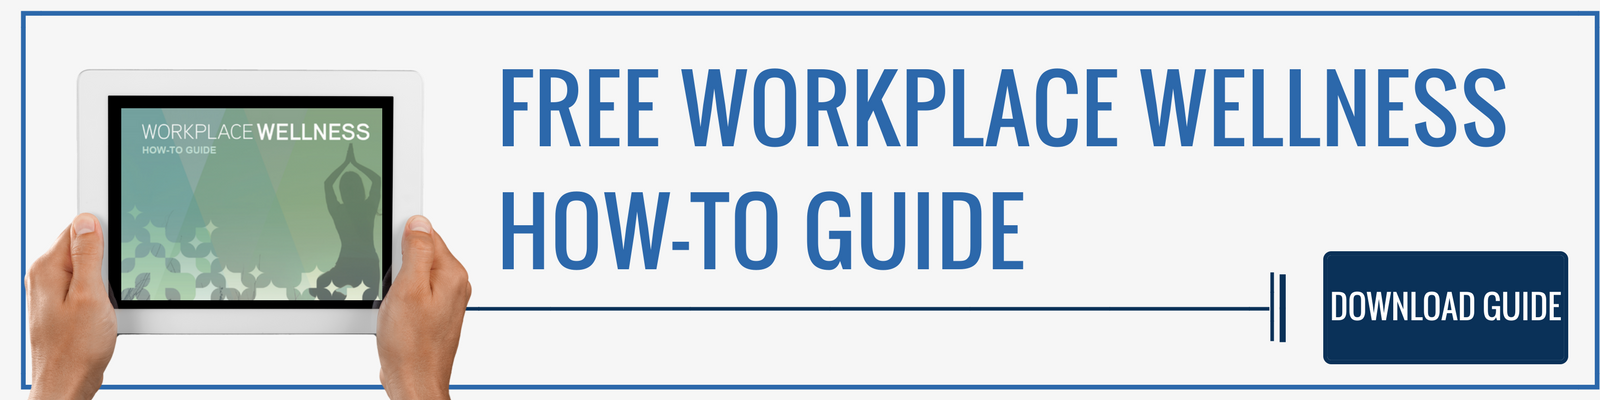 Workplace Wellness How-To Guide